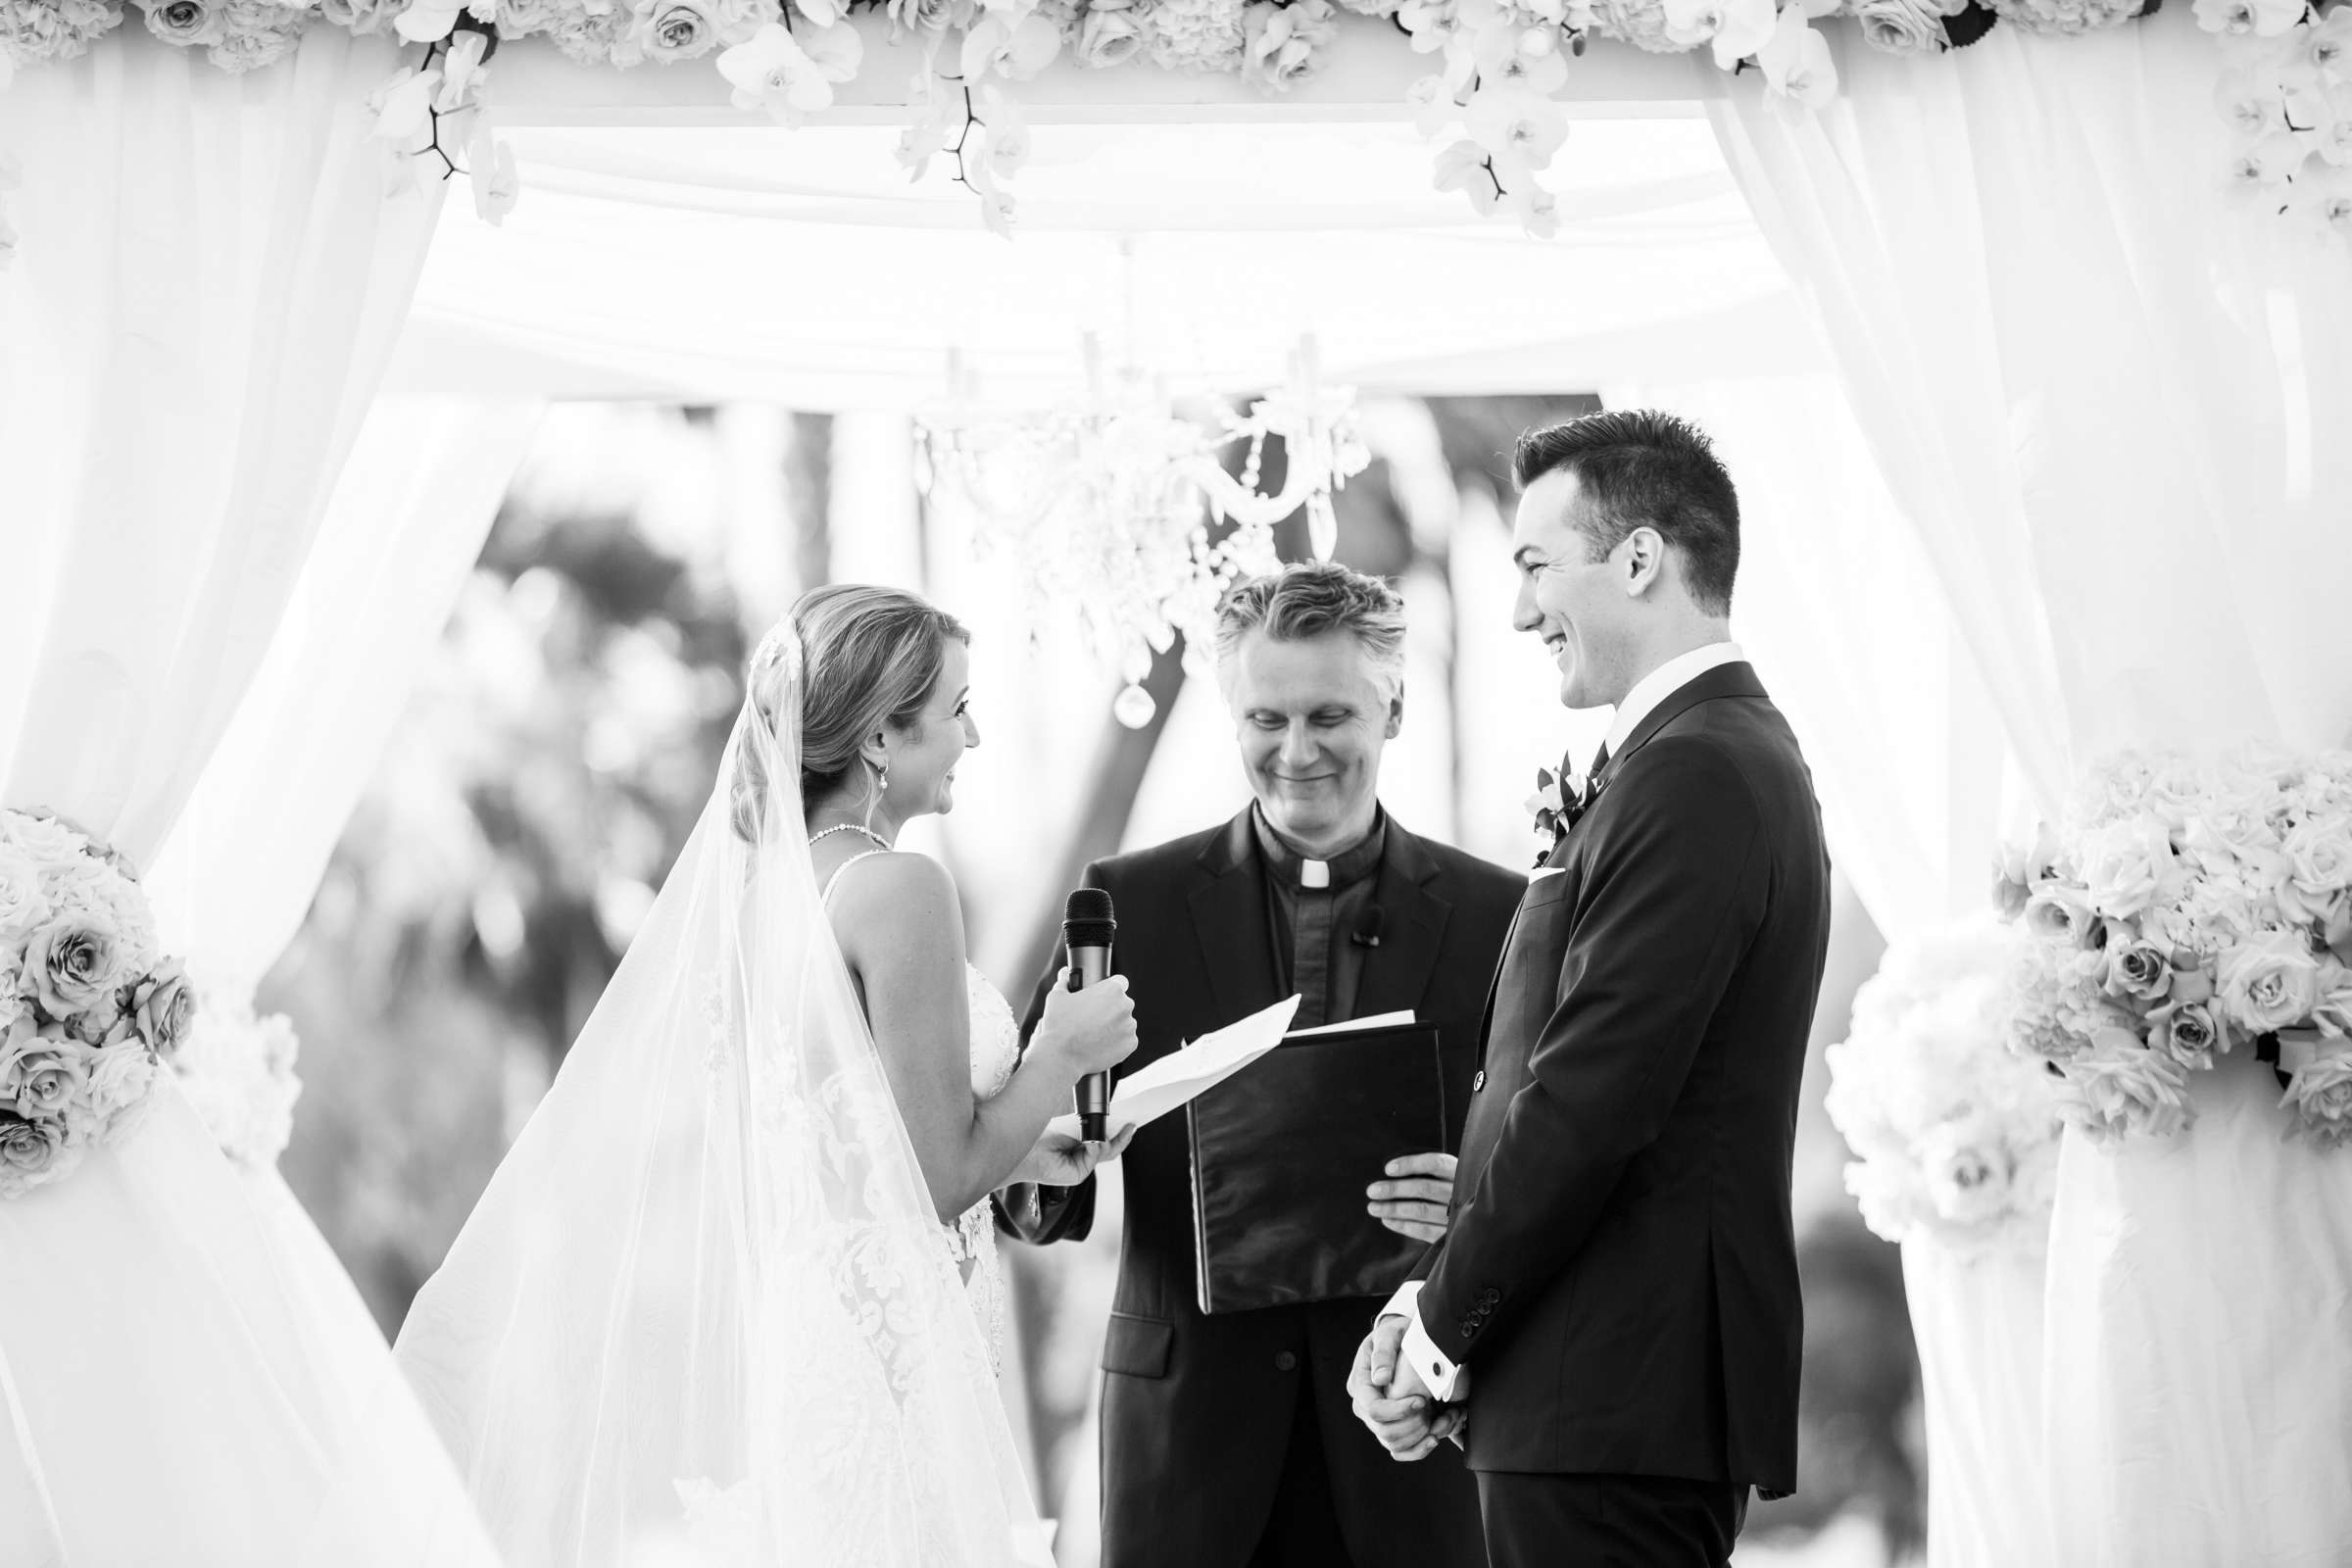 Fairbanks Ranch Country Club Wedding coordinated by Monarch Weddings, Gabriella and Kyle Wedding Photo #89 by True Photography